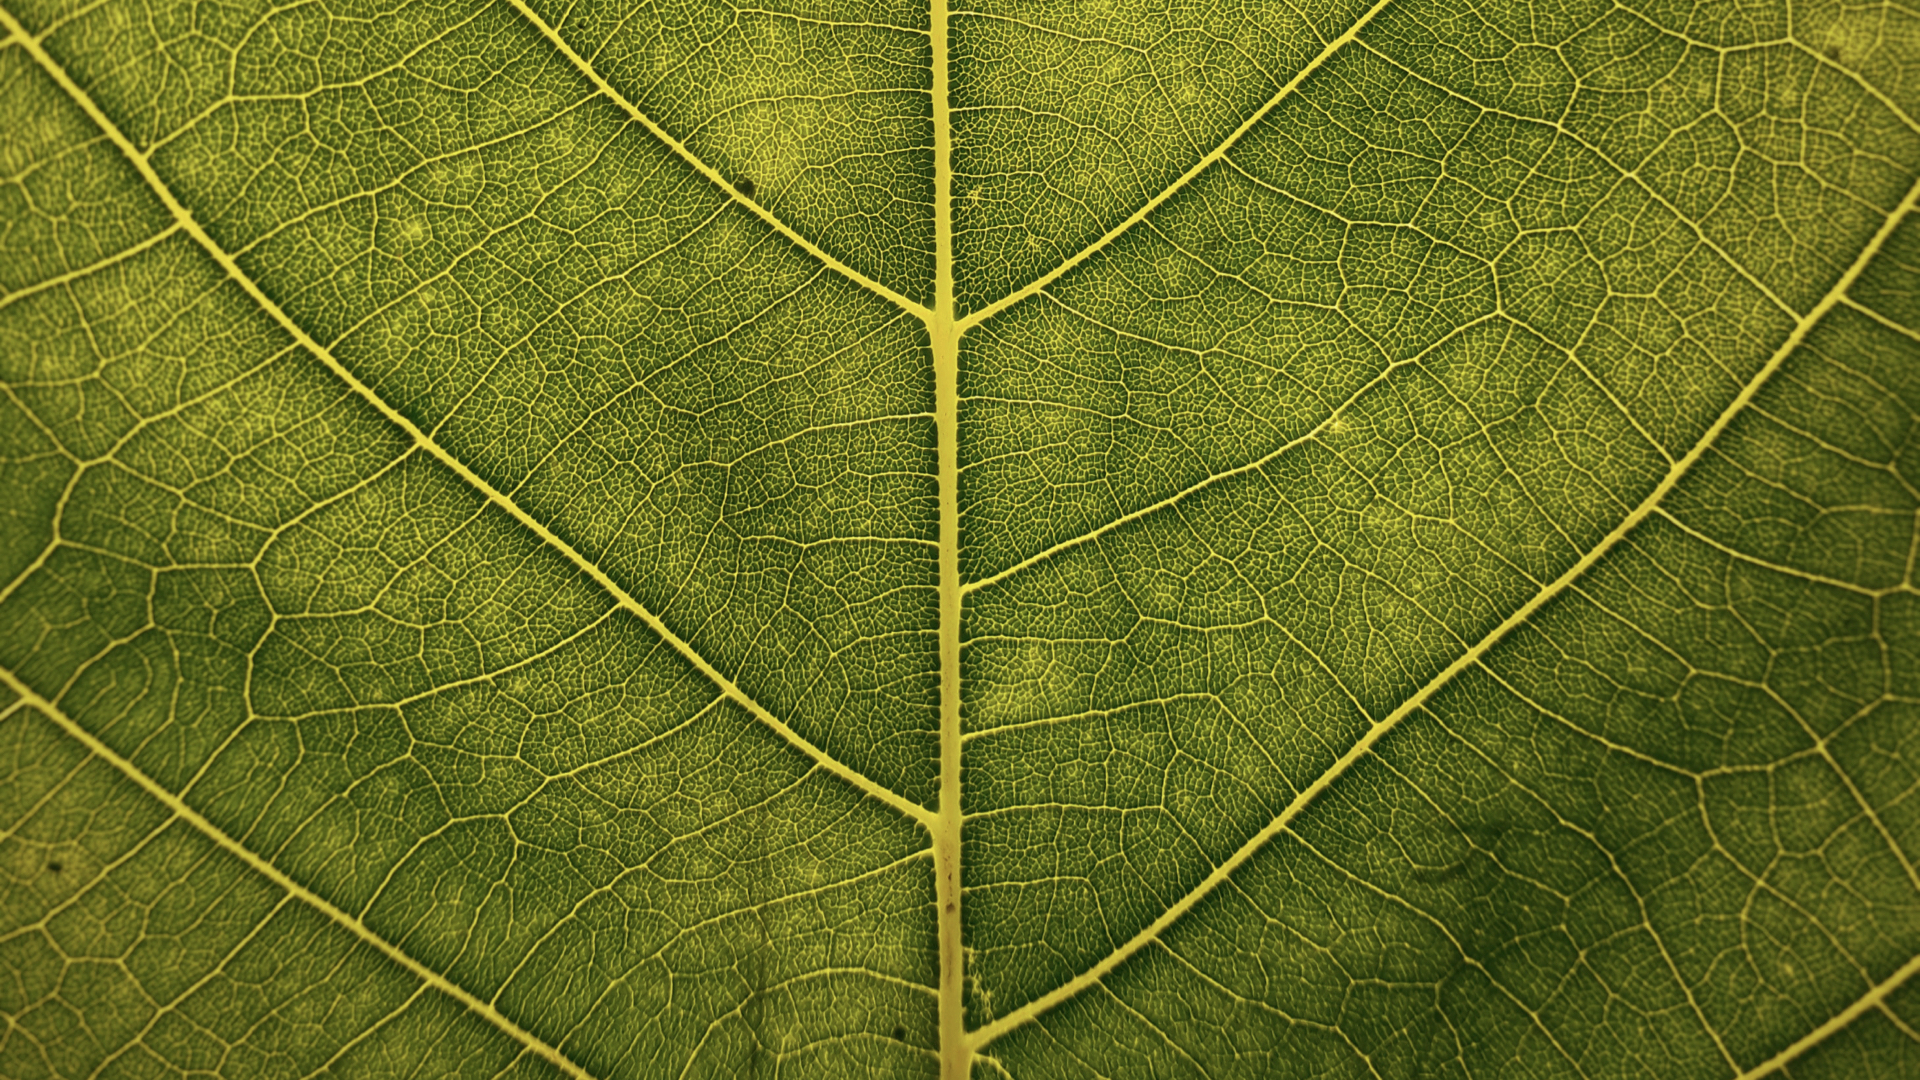 The veins of a leaf show how redundancy leads to a robust distribution network.